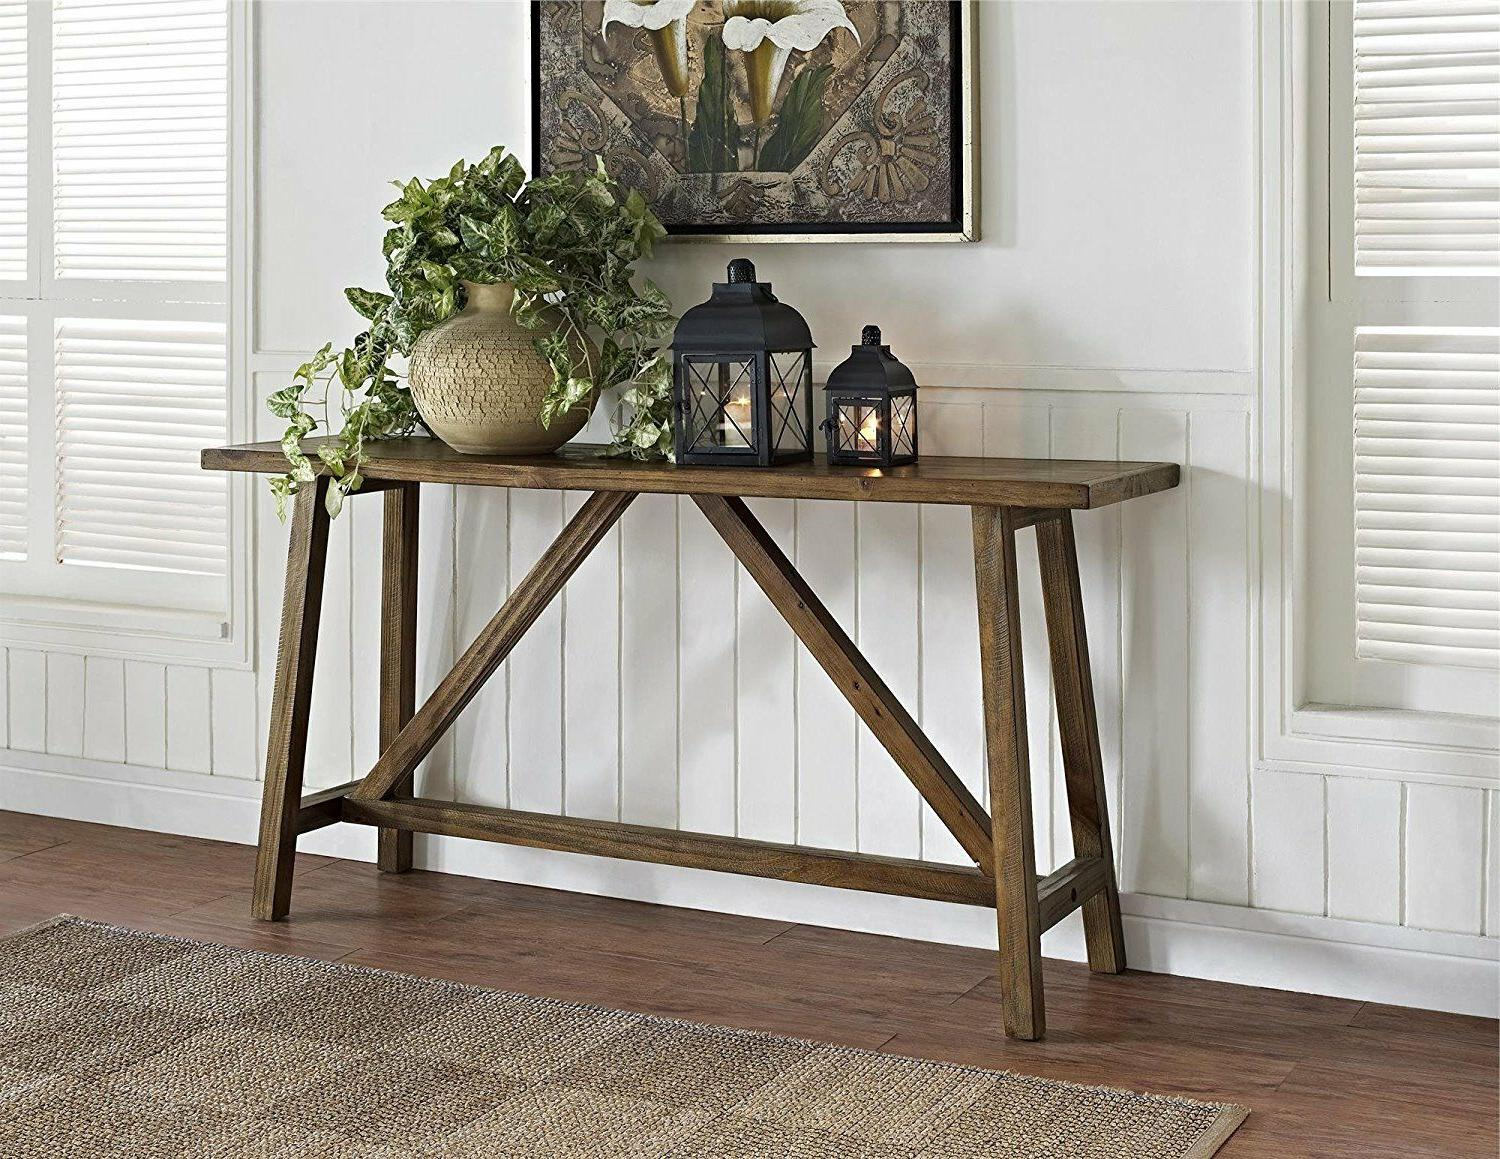 Rustic Hall Table Entryway Console Living Room Display Shelf